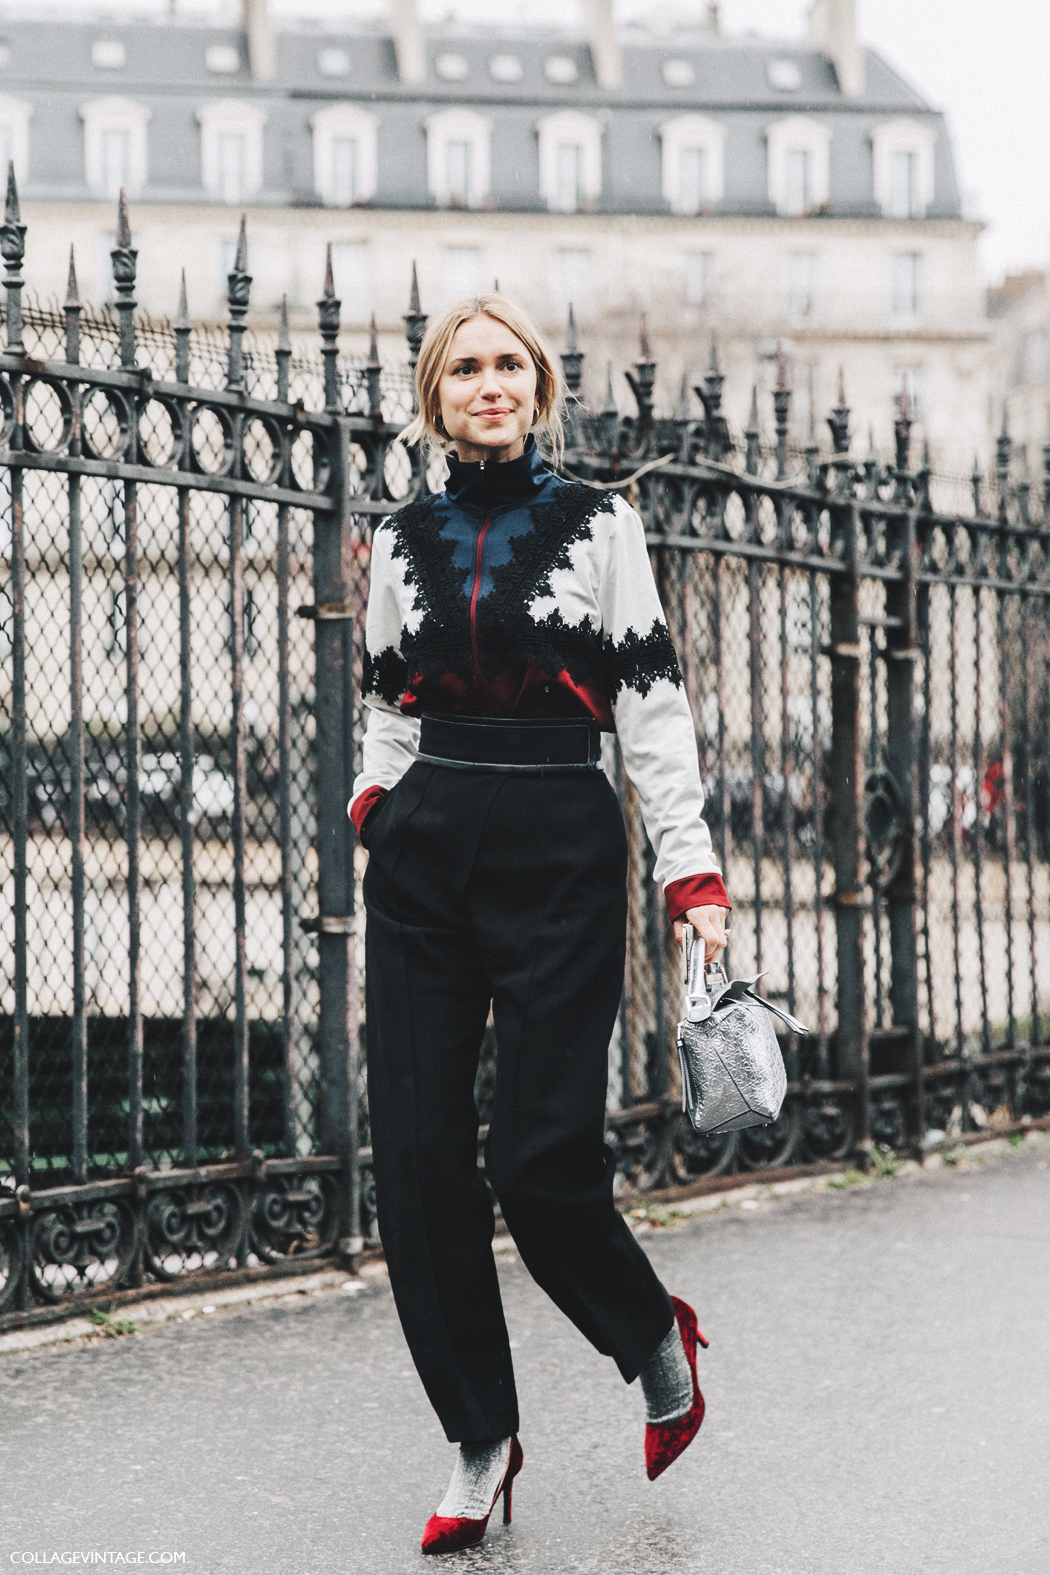 PFW-Paris_Fashion_Week_Fall_2016-Street_Style-Collage_Vintage-Pernille_Teisbaek-Loewe_Bag-2